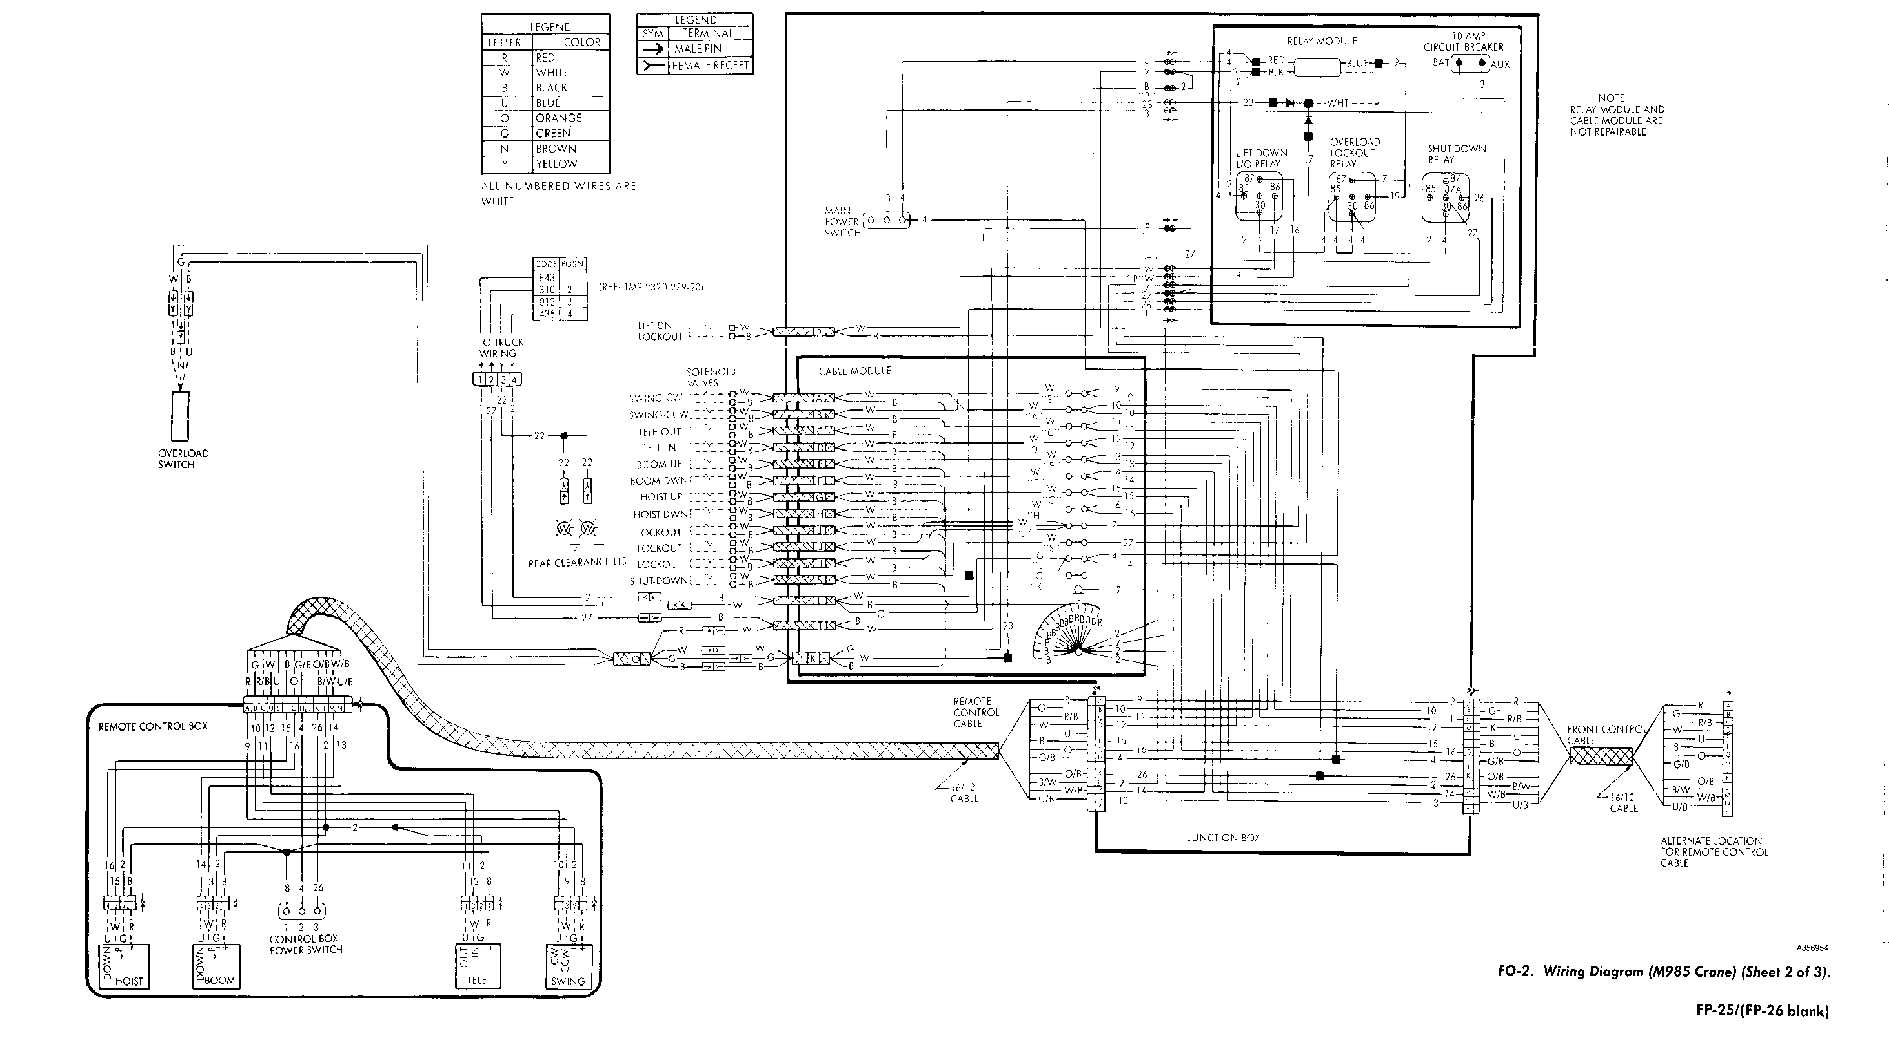 Fo 2 Wiring Diagram M985 Crane Sheet 2 Of 3